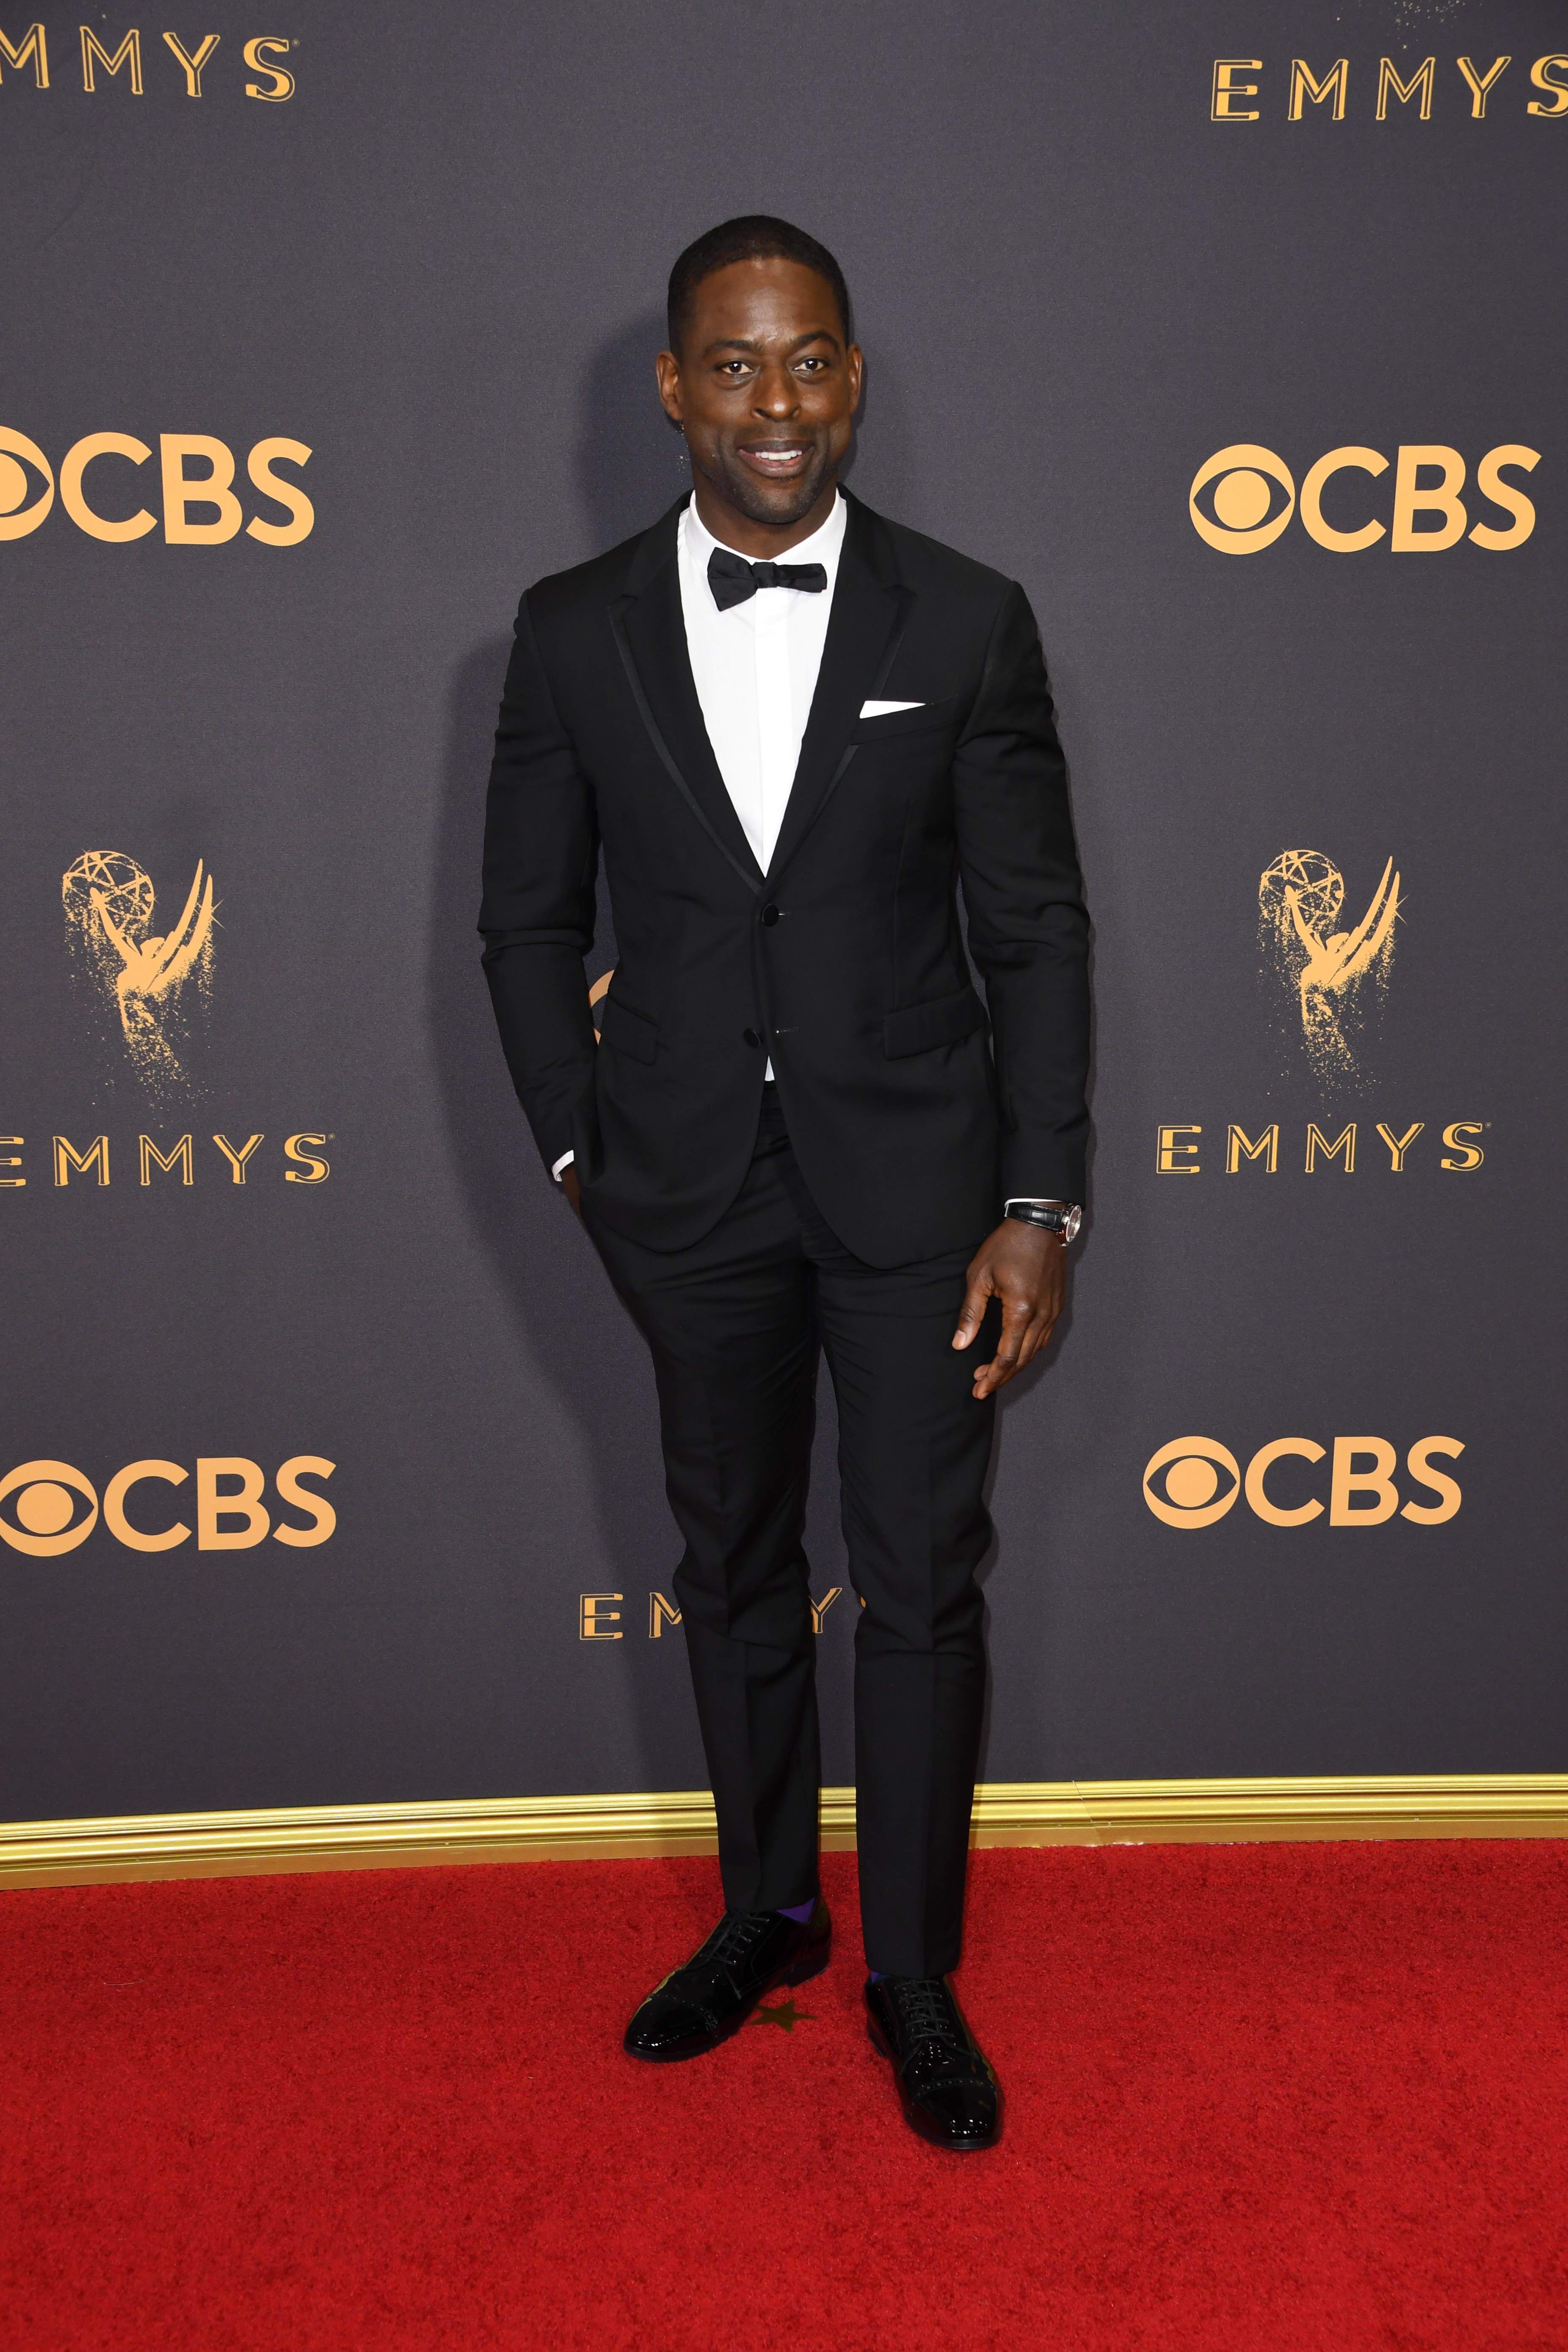 Sterling K. Brown arrives for the 69th Emmy Awards at the Microsoft Theatre on Sept.17, 2017 in Los Angeles.